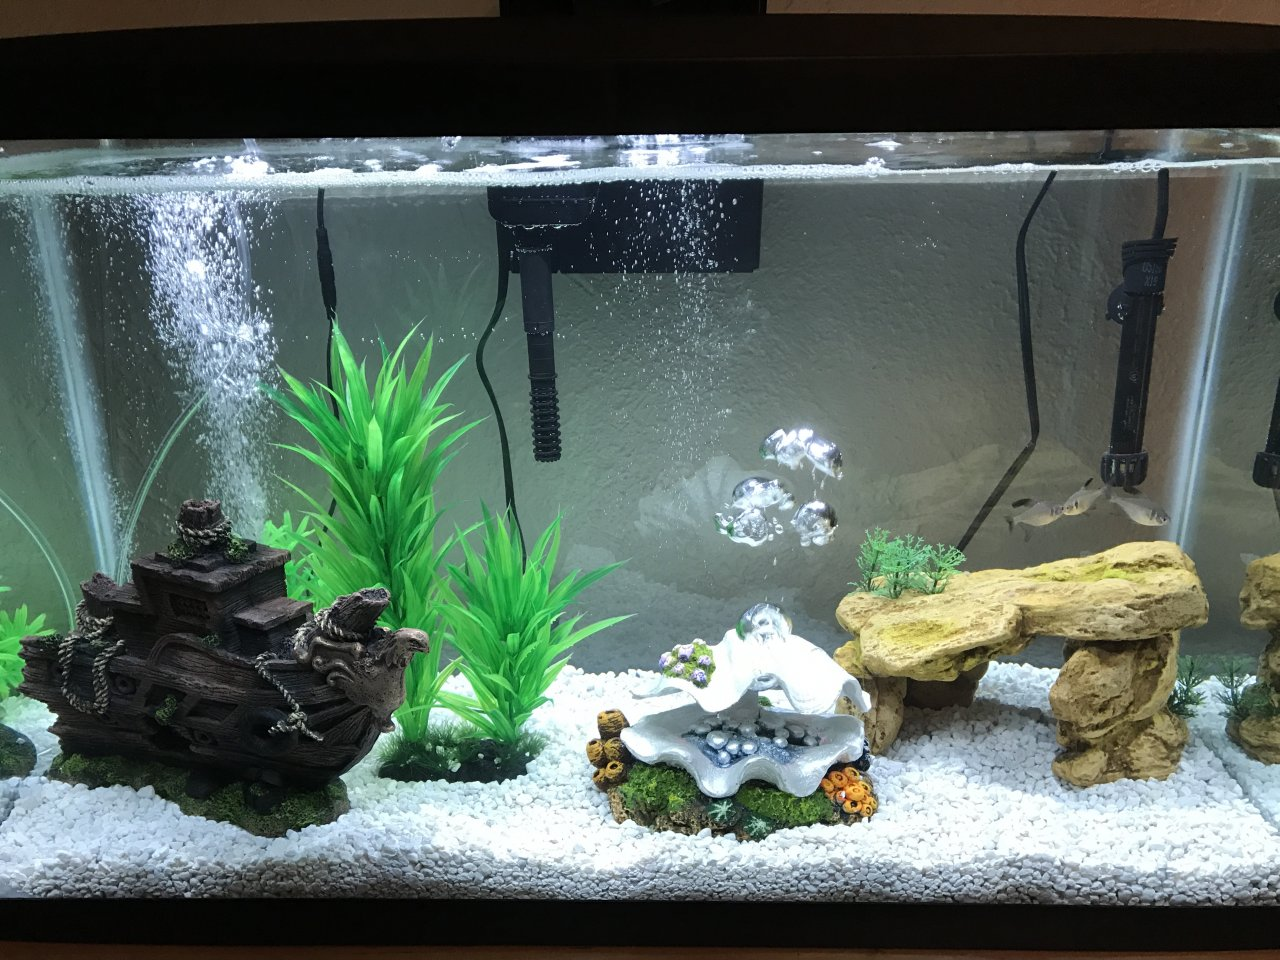 Freshwater aquarium fish not eating - Only The Largest Fish Got One Of The Worms And The Female Will Get A Flake Occasionally The Pellets Are Completely Ignored Any Advise Will Be Greatly